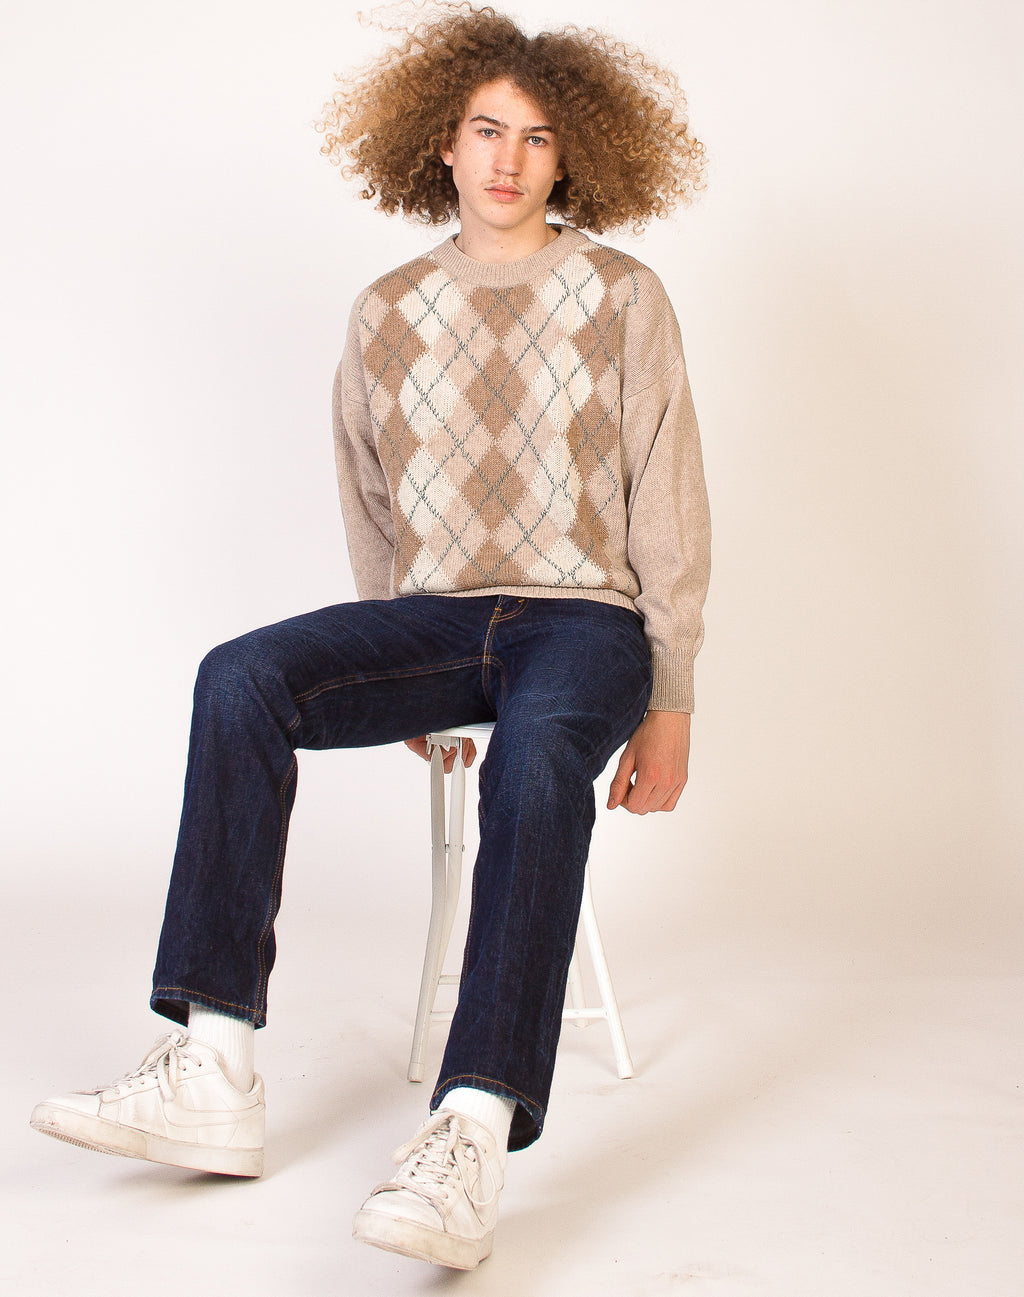 BEIGE AND BROWN ARGYLE KNIT